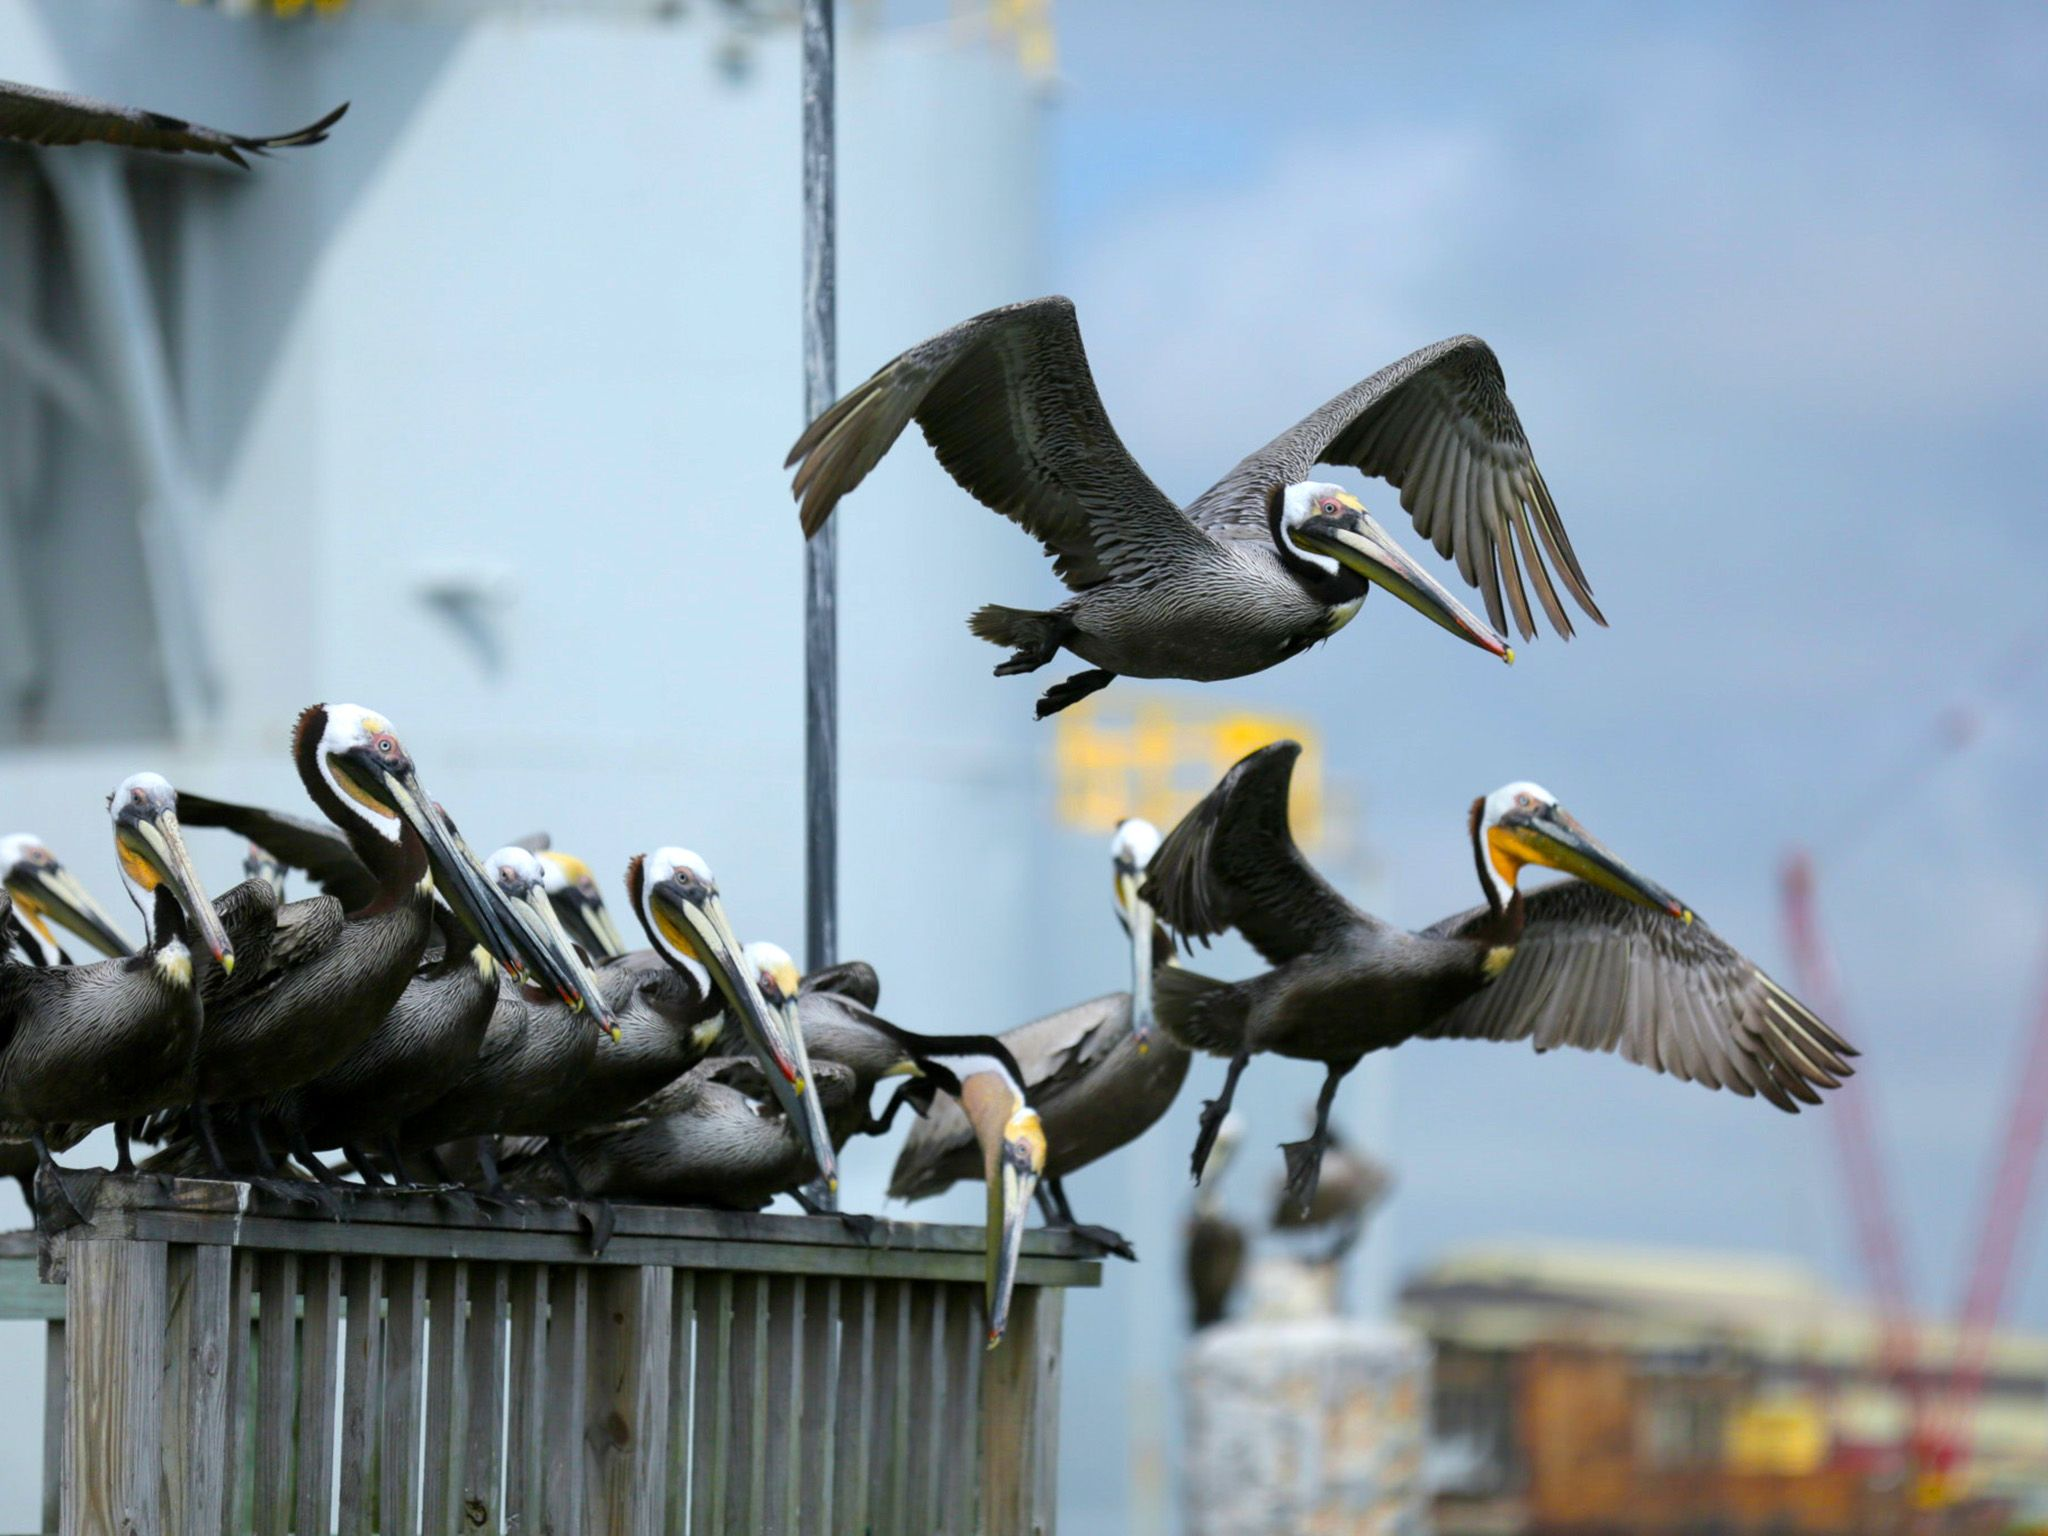 Galveston, Texas: Brown pelicans flying. This image is from Big Fish Texas. [Photo of the day - دسامبر 2015]